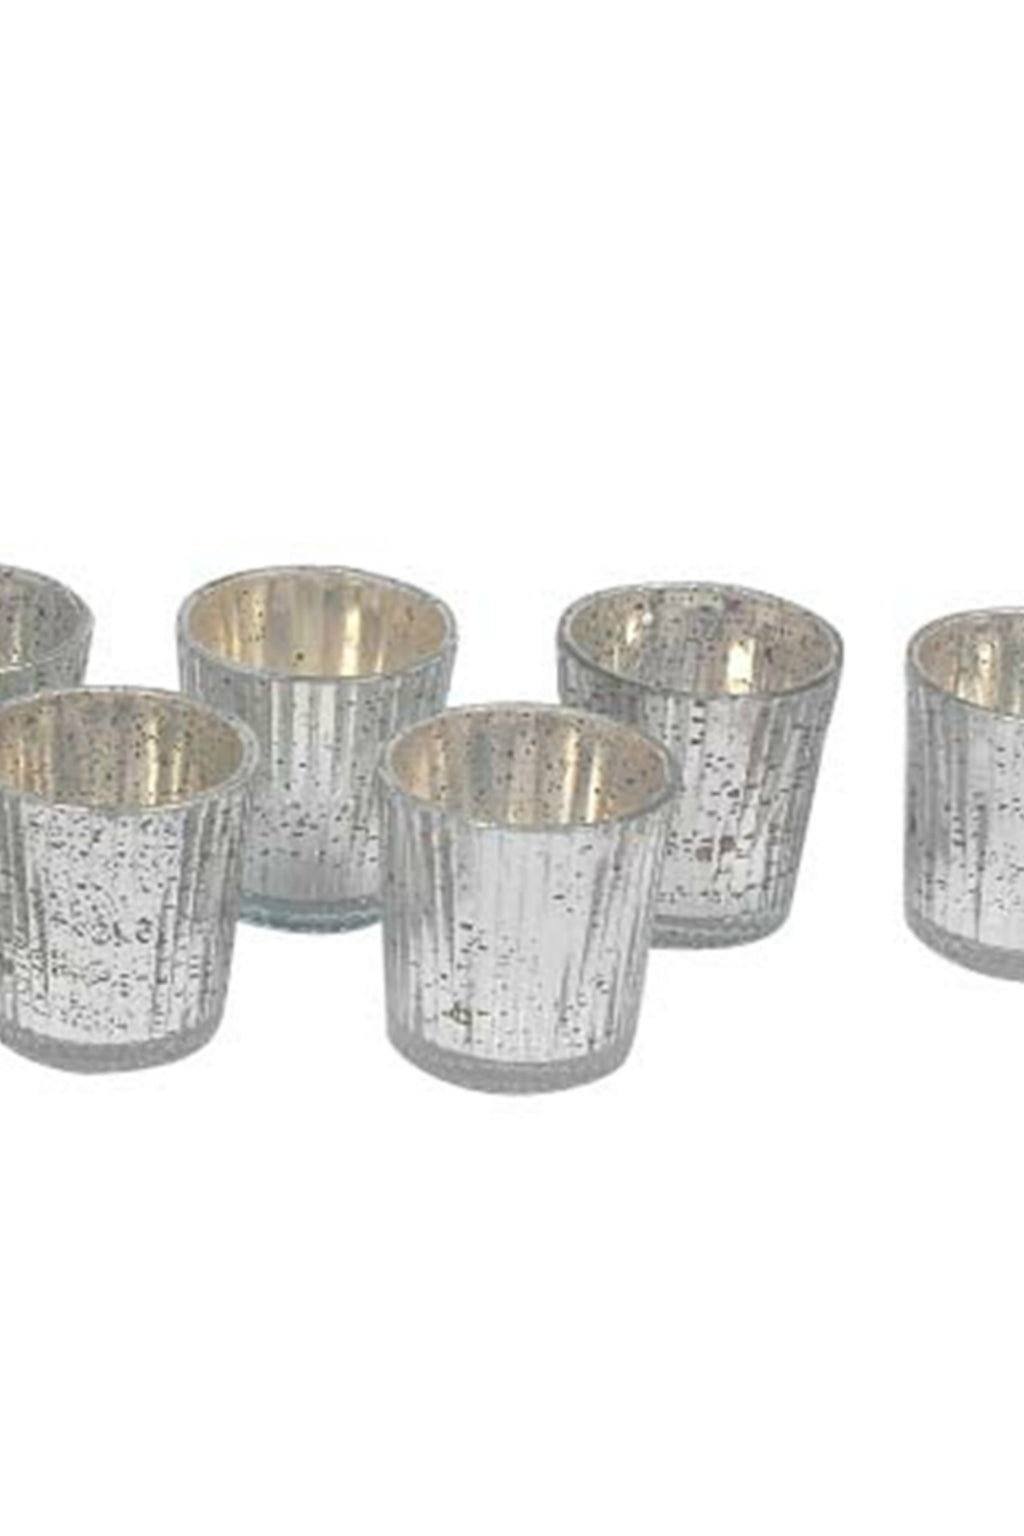 BIDK Home Silver Finish Mercury Glass Votives